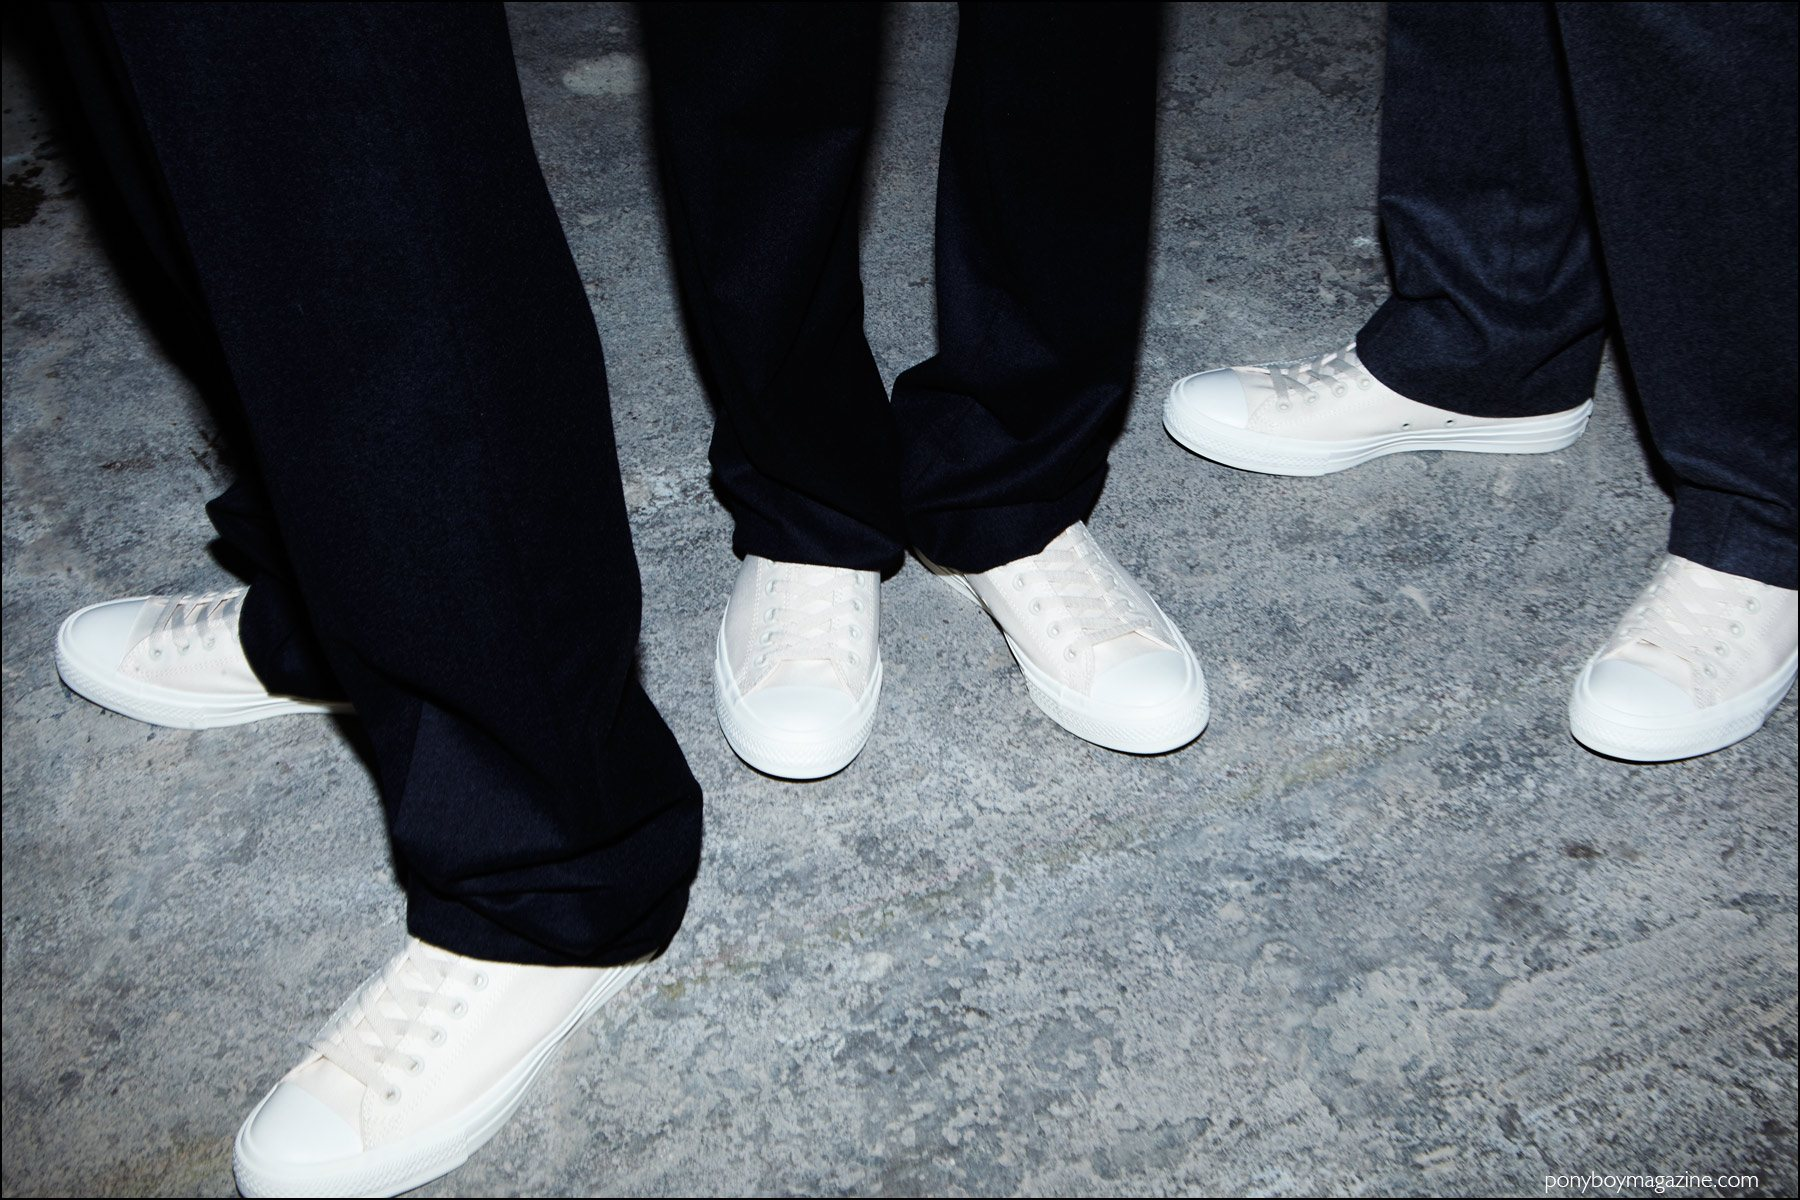 White converse tennis shoes photographed backstage at the Duckie Brown F/W16 menswear show. Photography by Alexander Thompson for Ponyboy magazine NY.